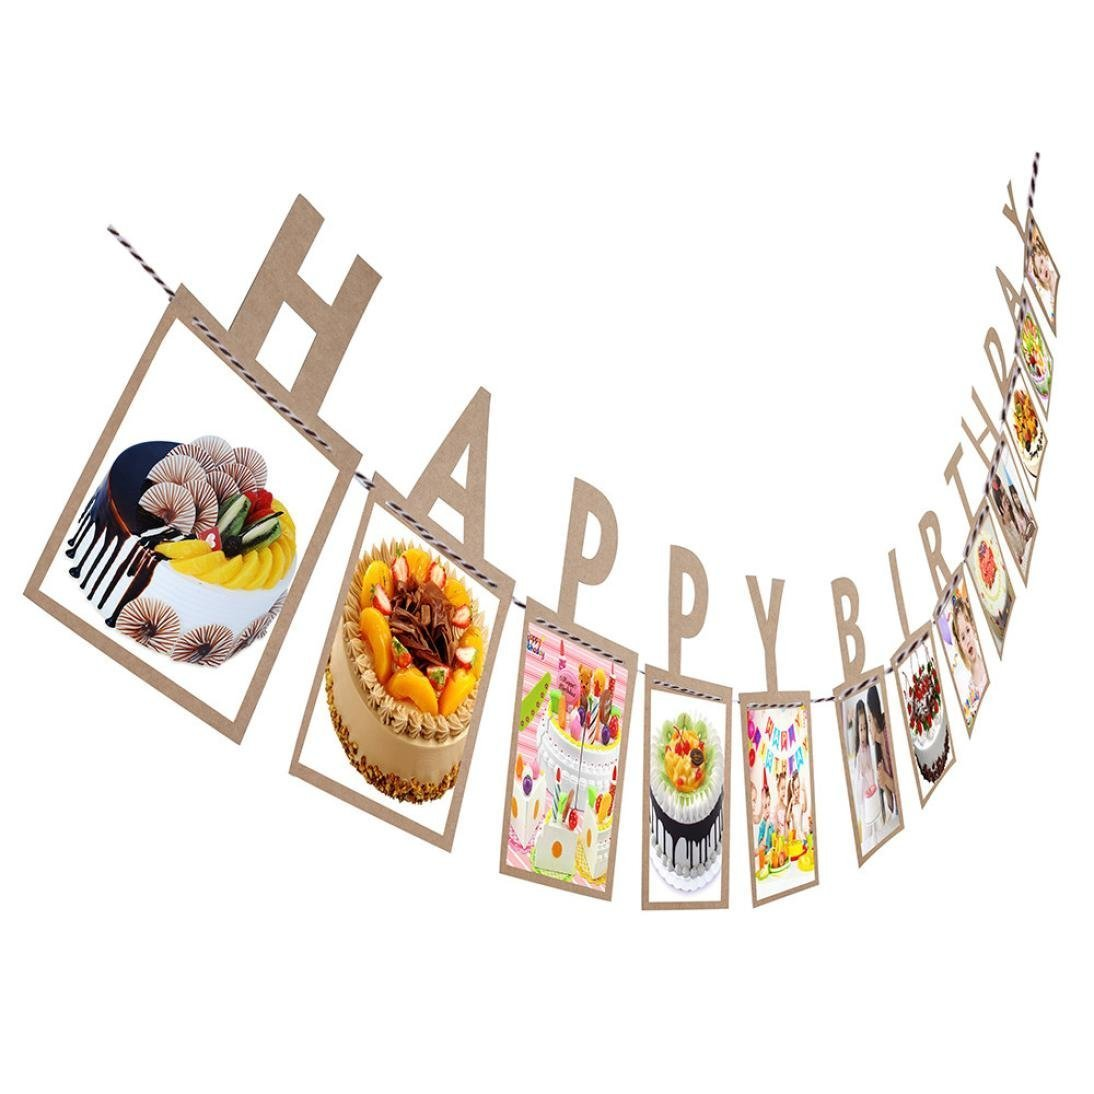 Culater® Creative Happy Birthday Photo Banner DIY Paper Photo Frame Wall Hanging Picture Album (Gold) UKAIALIDTV408